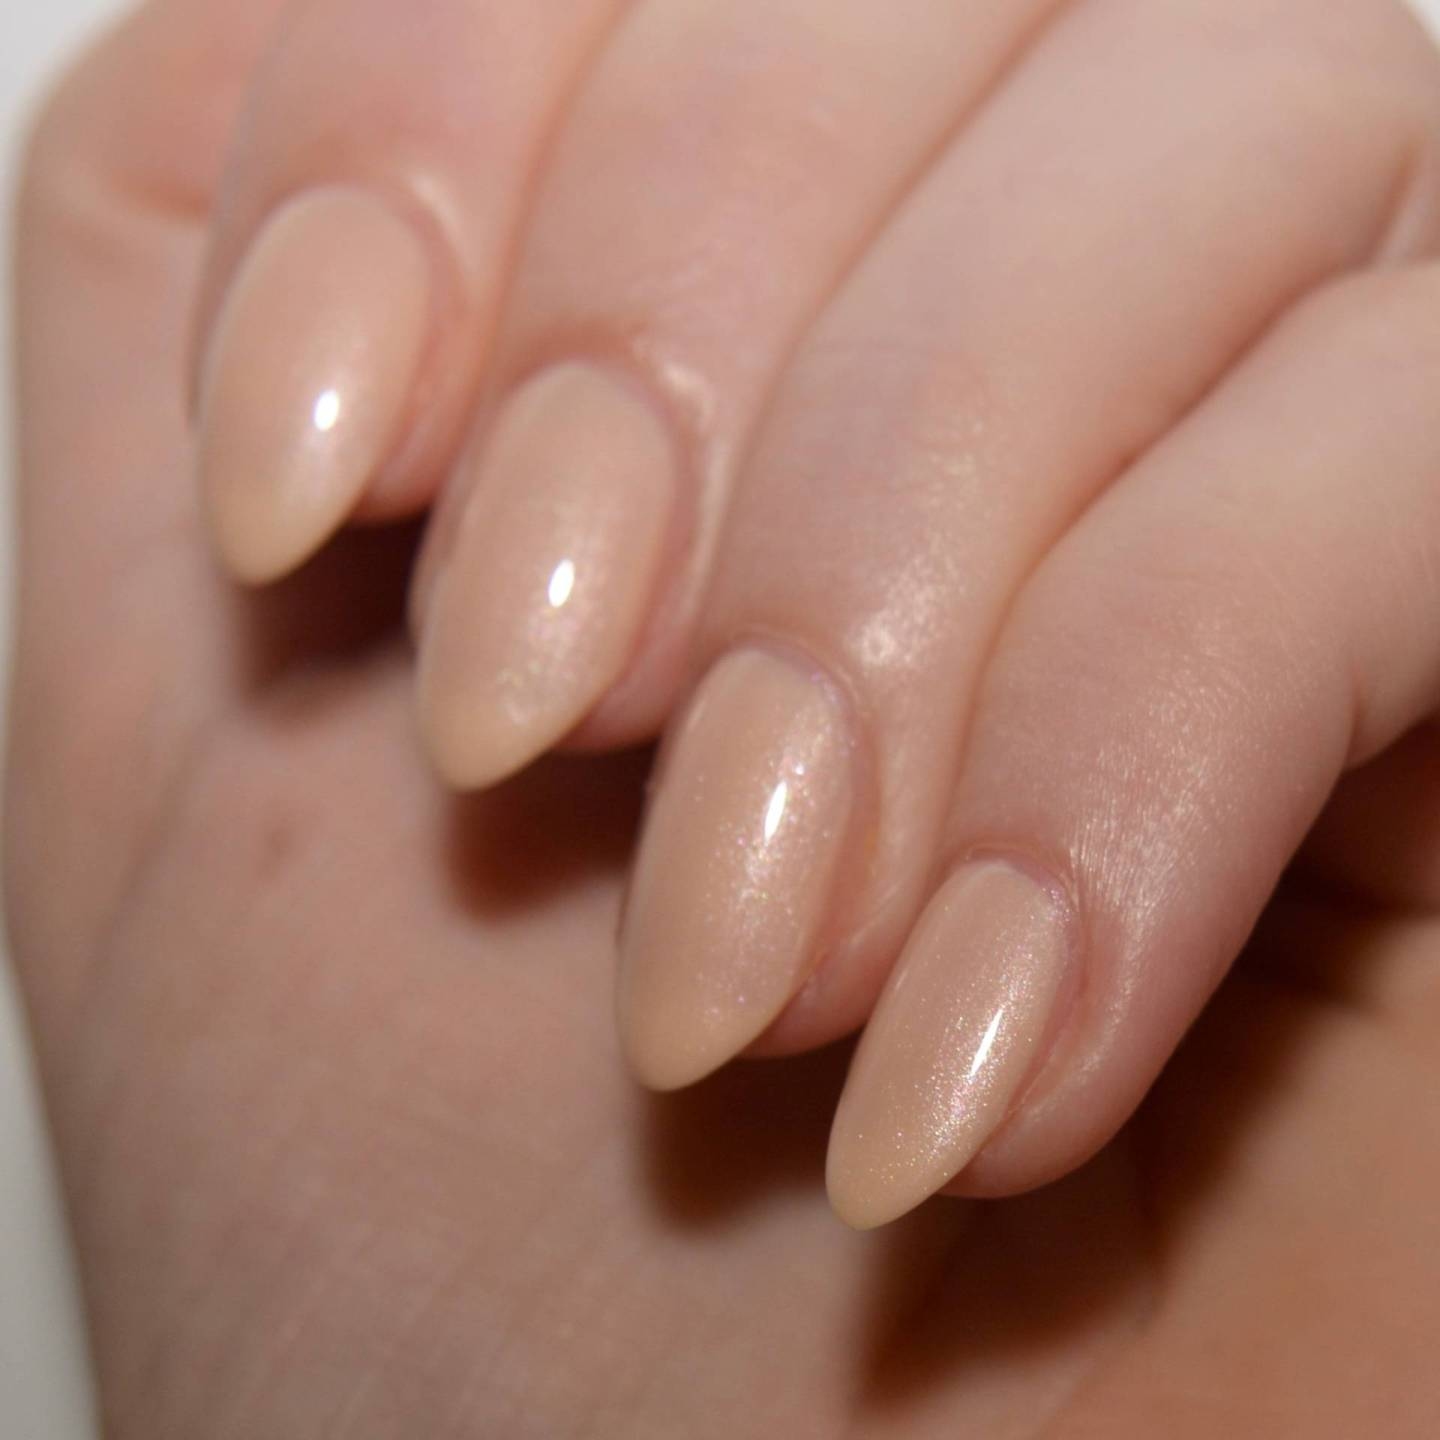 Essie 'Pure Chiffon' from the Retro Revival 2017 collection. A pretty gold beige with tons of shimmer.